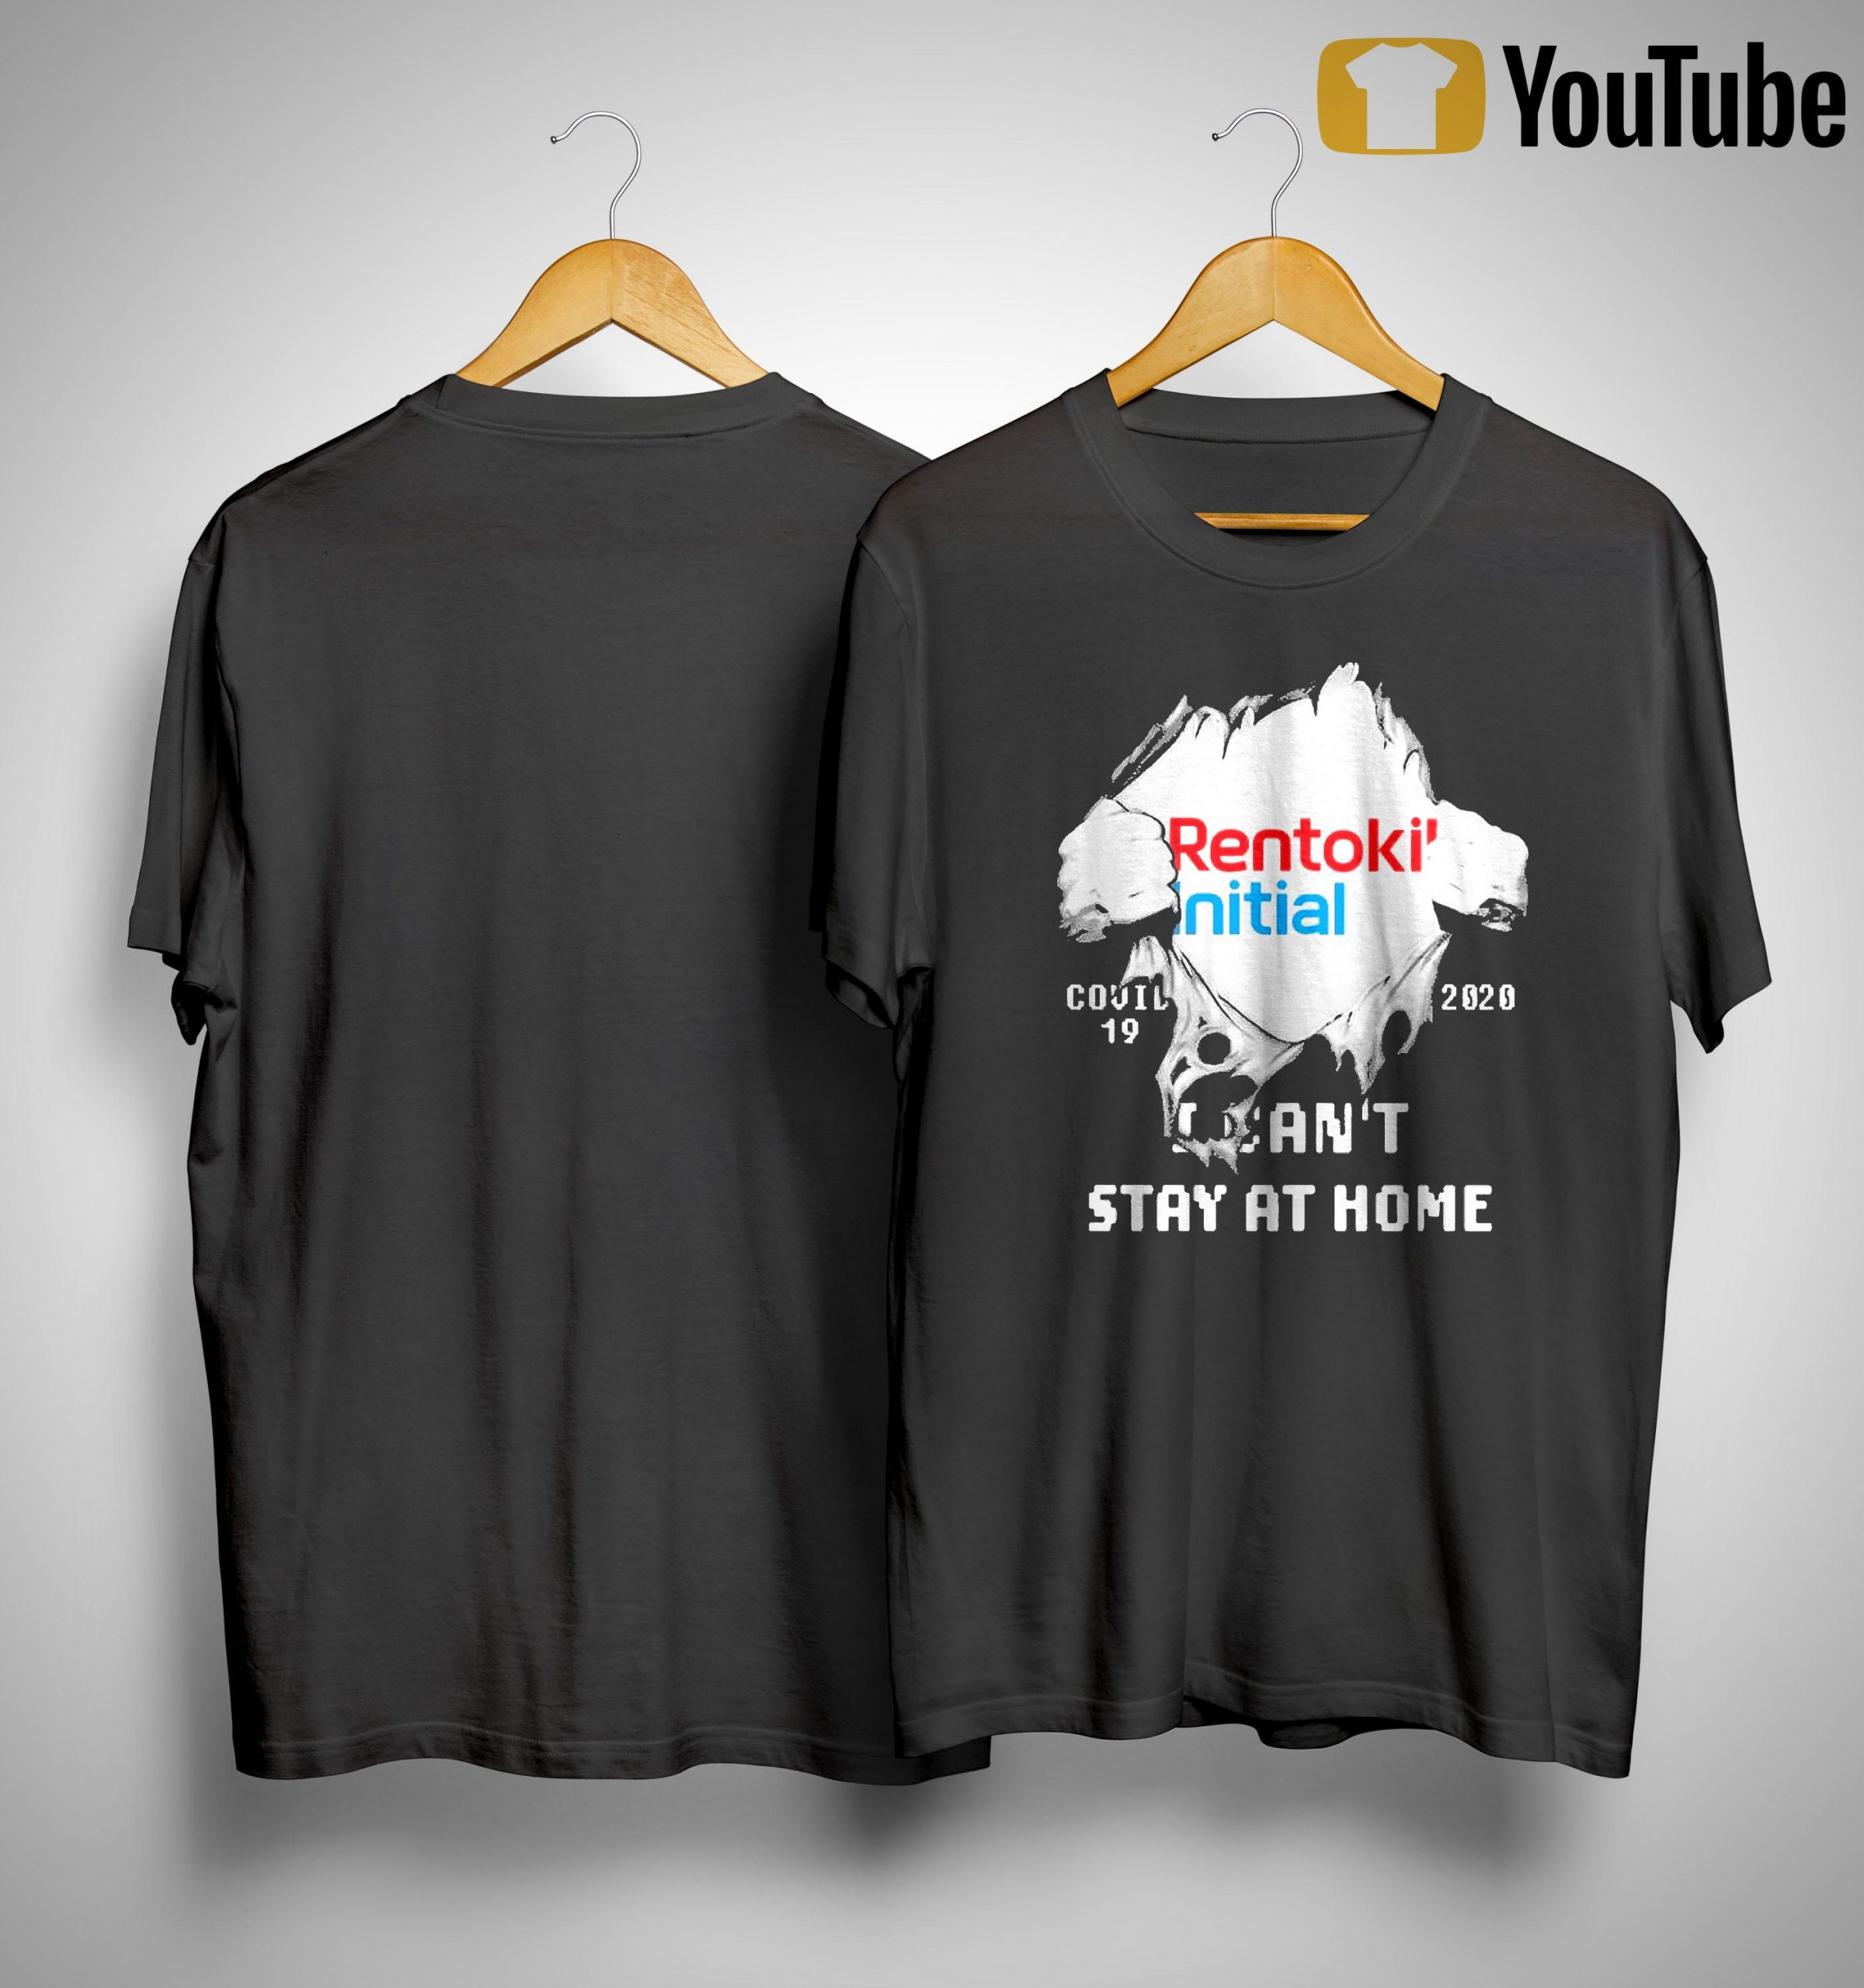 Inside Me Rentokil Initial Covid 19 2020 I Can't Stay At Home Shirt